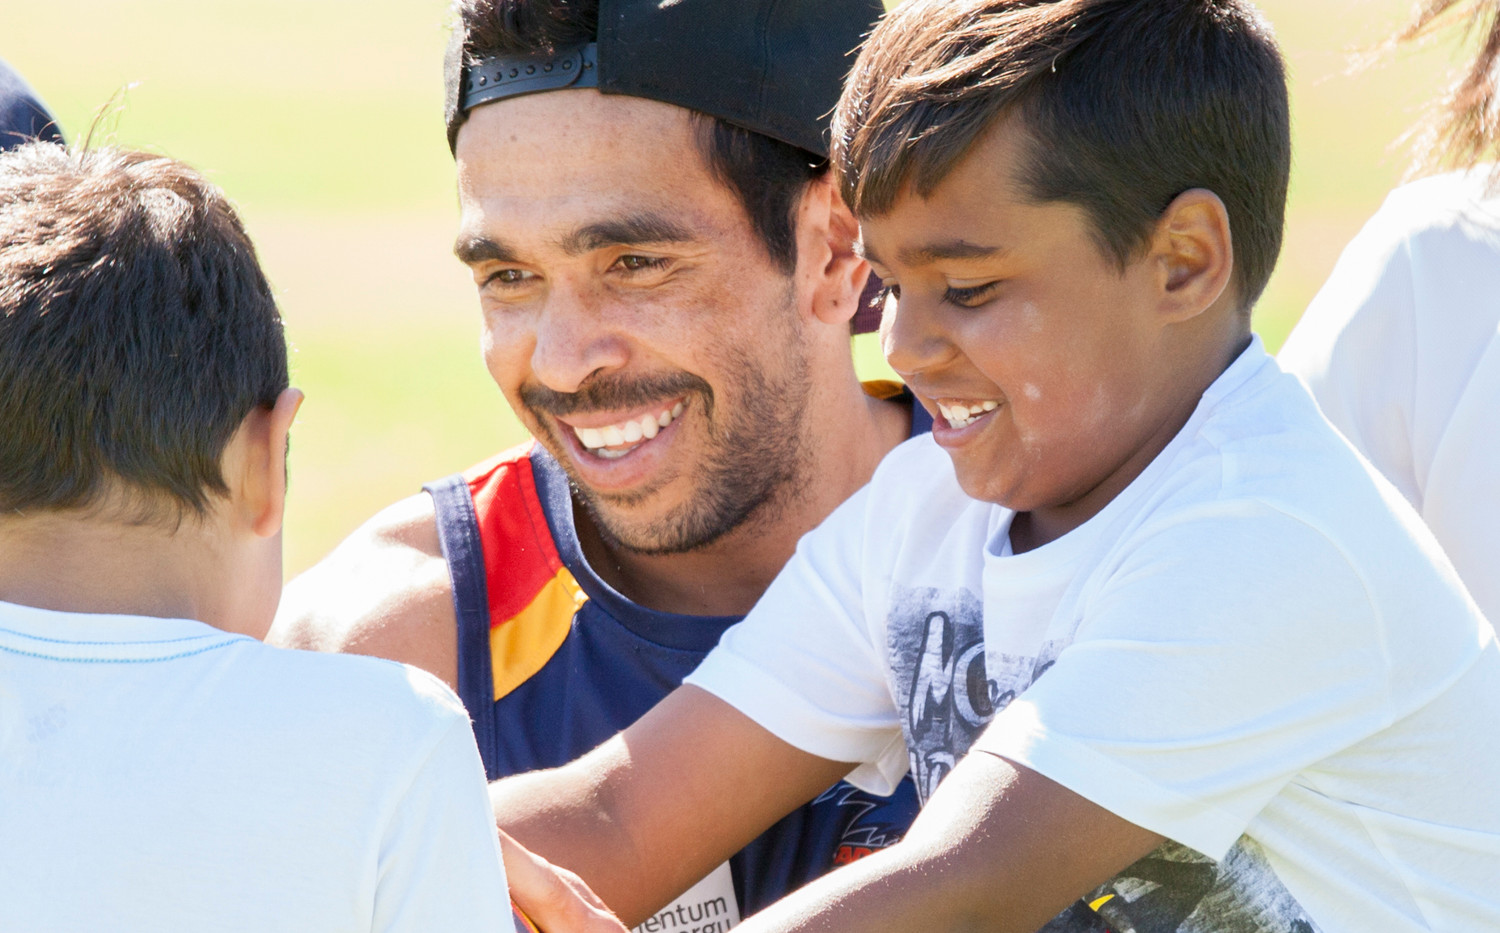 Eddie Betts, footballer